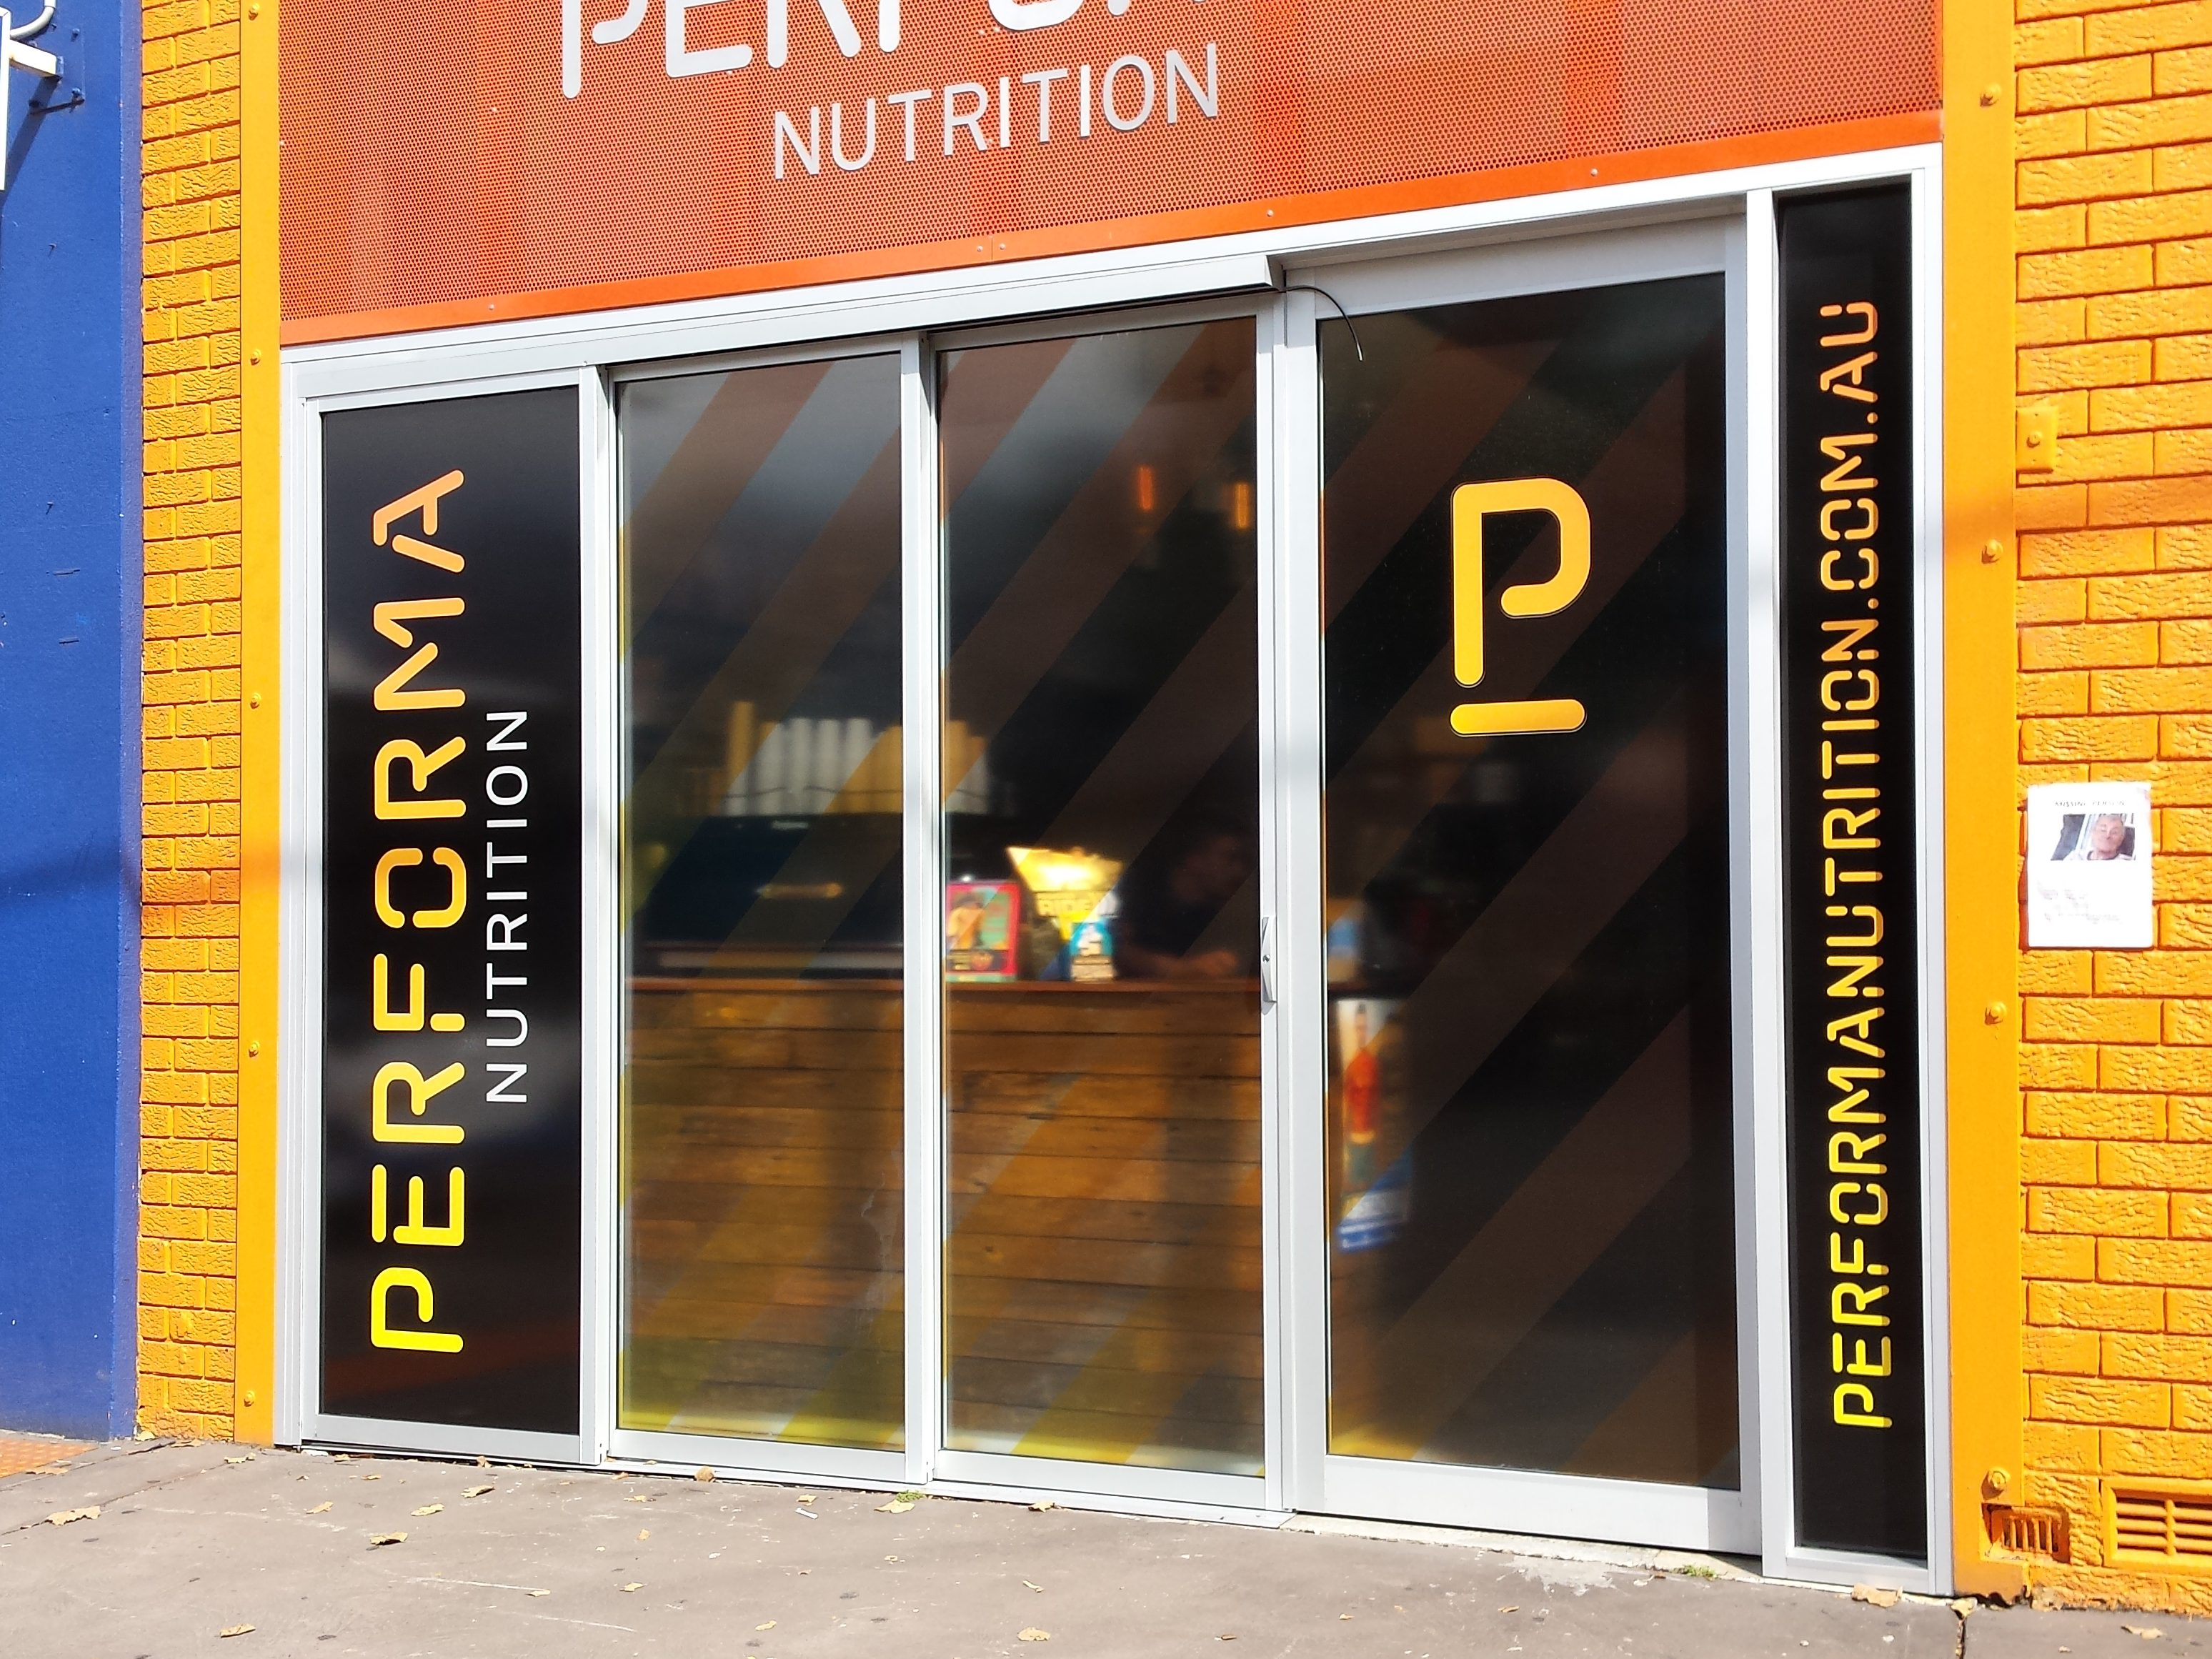 Perfoma Nutrition Window Signage